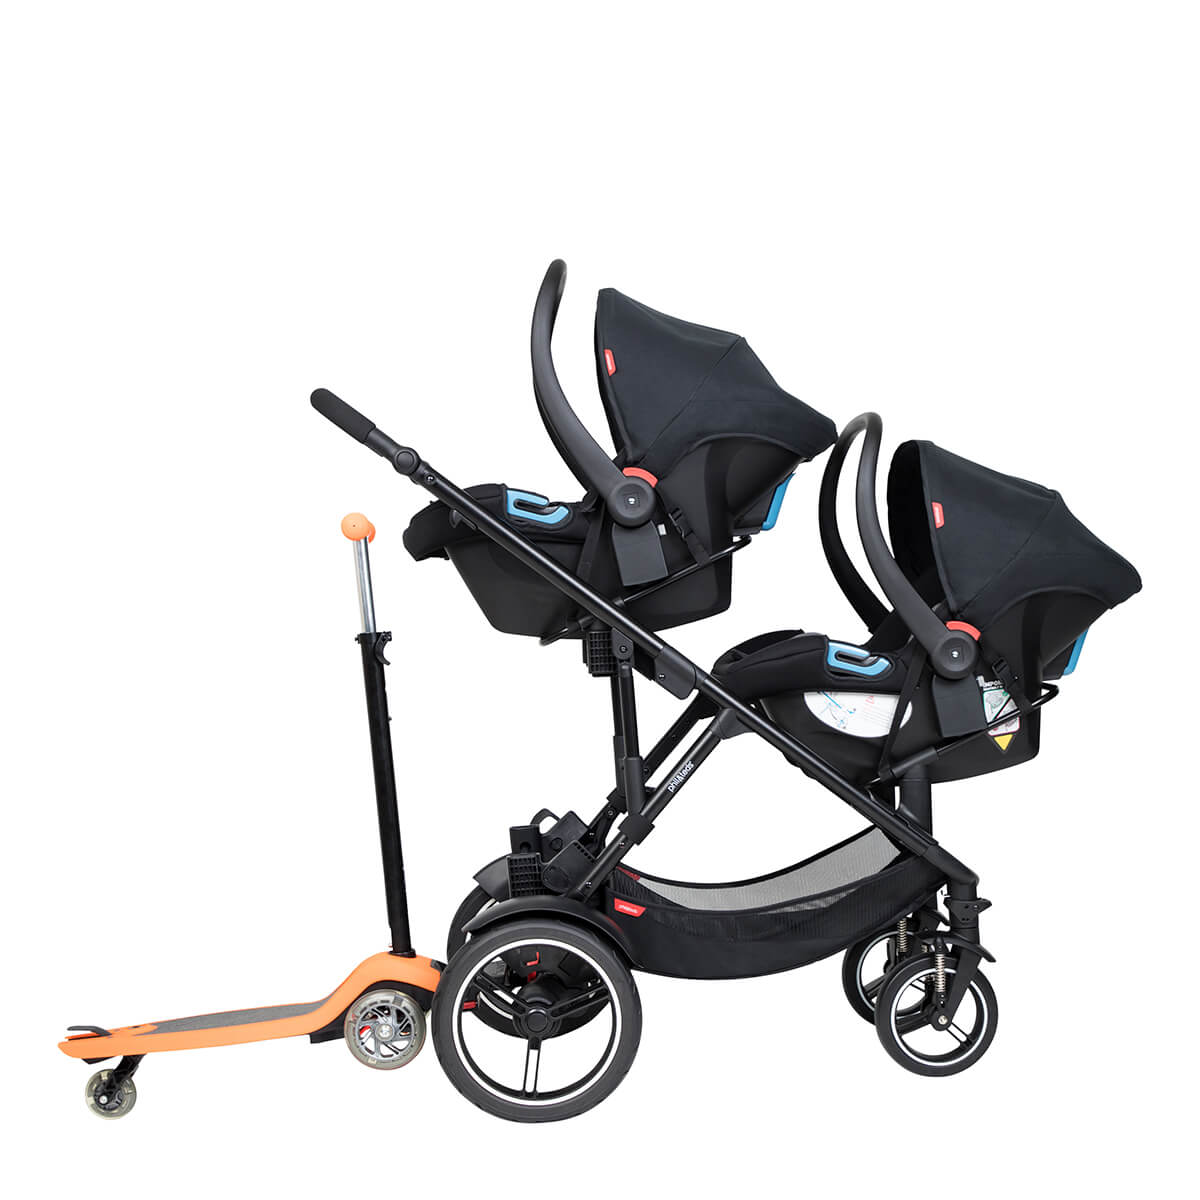 https://cdn.accentuate.io/4509917544525/19466498146498/philteds-voyager-buggy-with-double-travel-systems-and-freerider-stroller-board-in-the-rear-v1626485612026.jpg?1200x1200